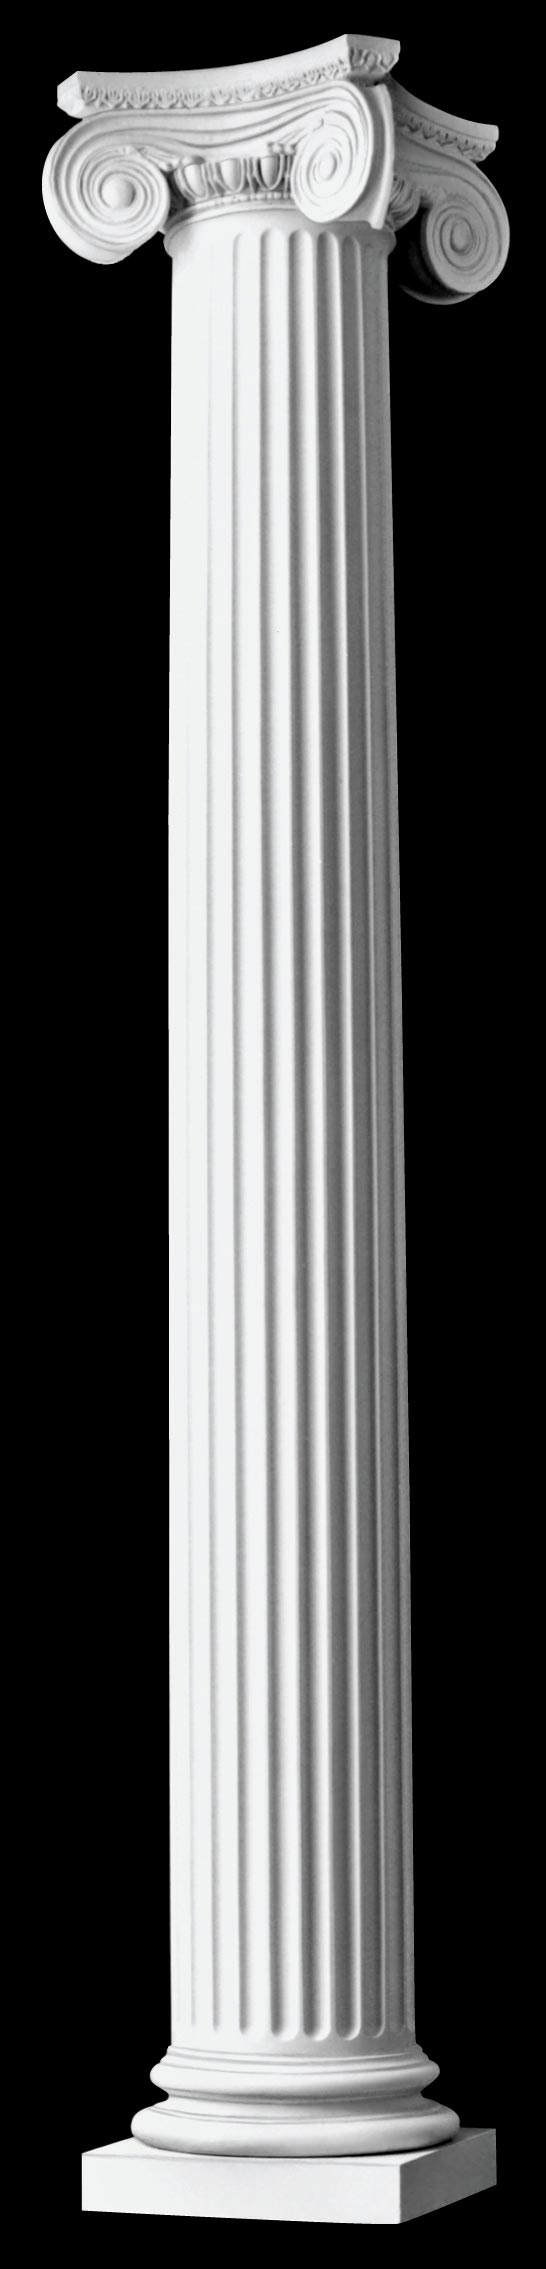 Fluted architectural wood columns greek angular ionic design for Architectural wood columns